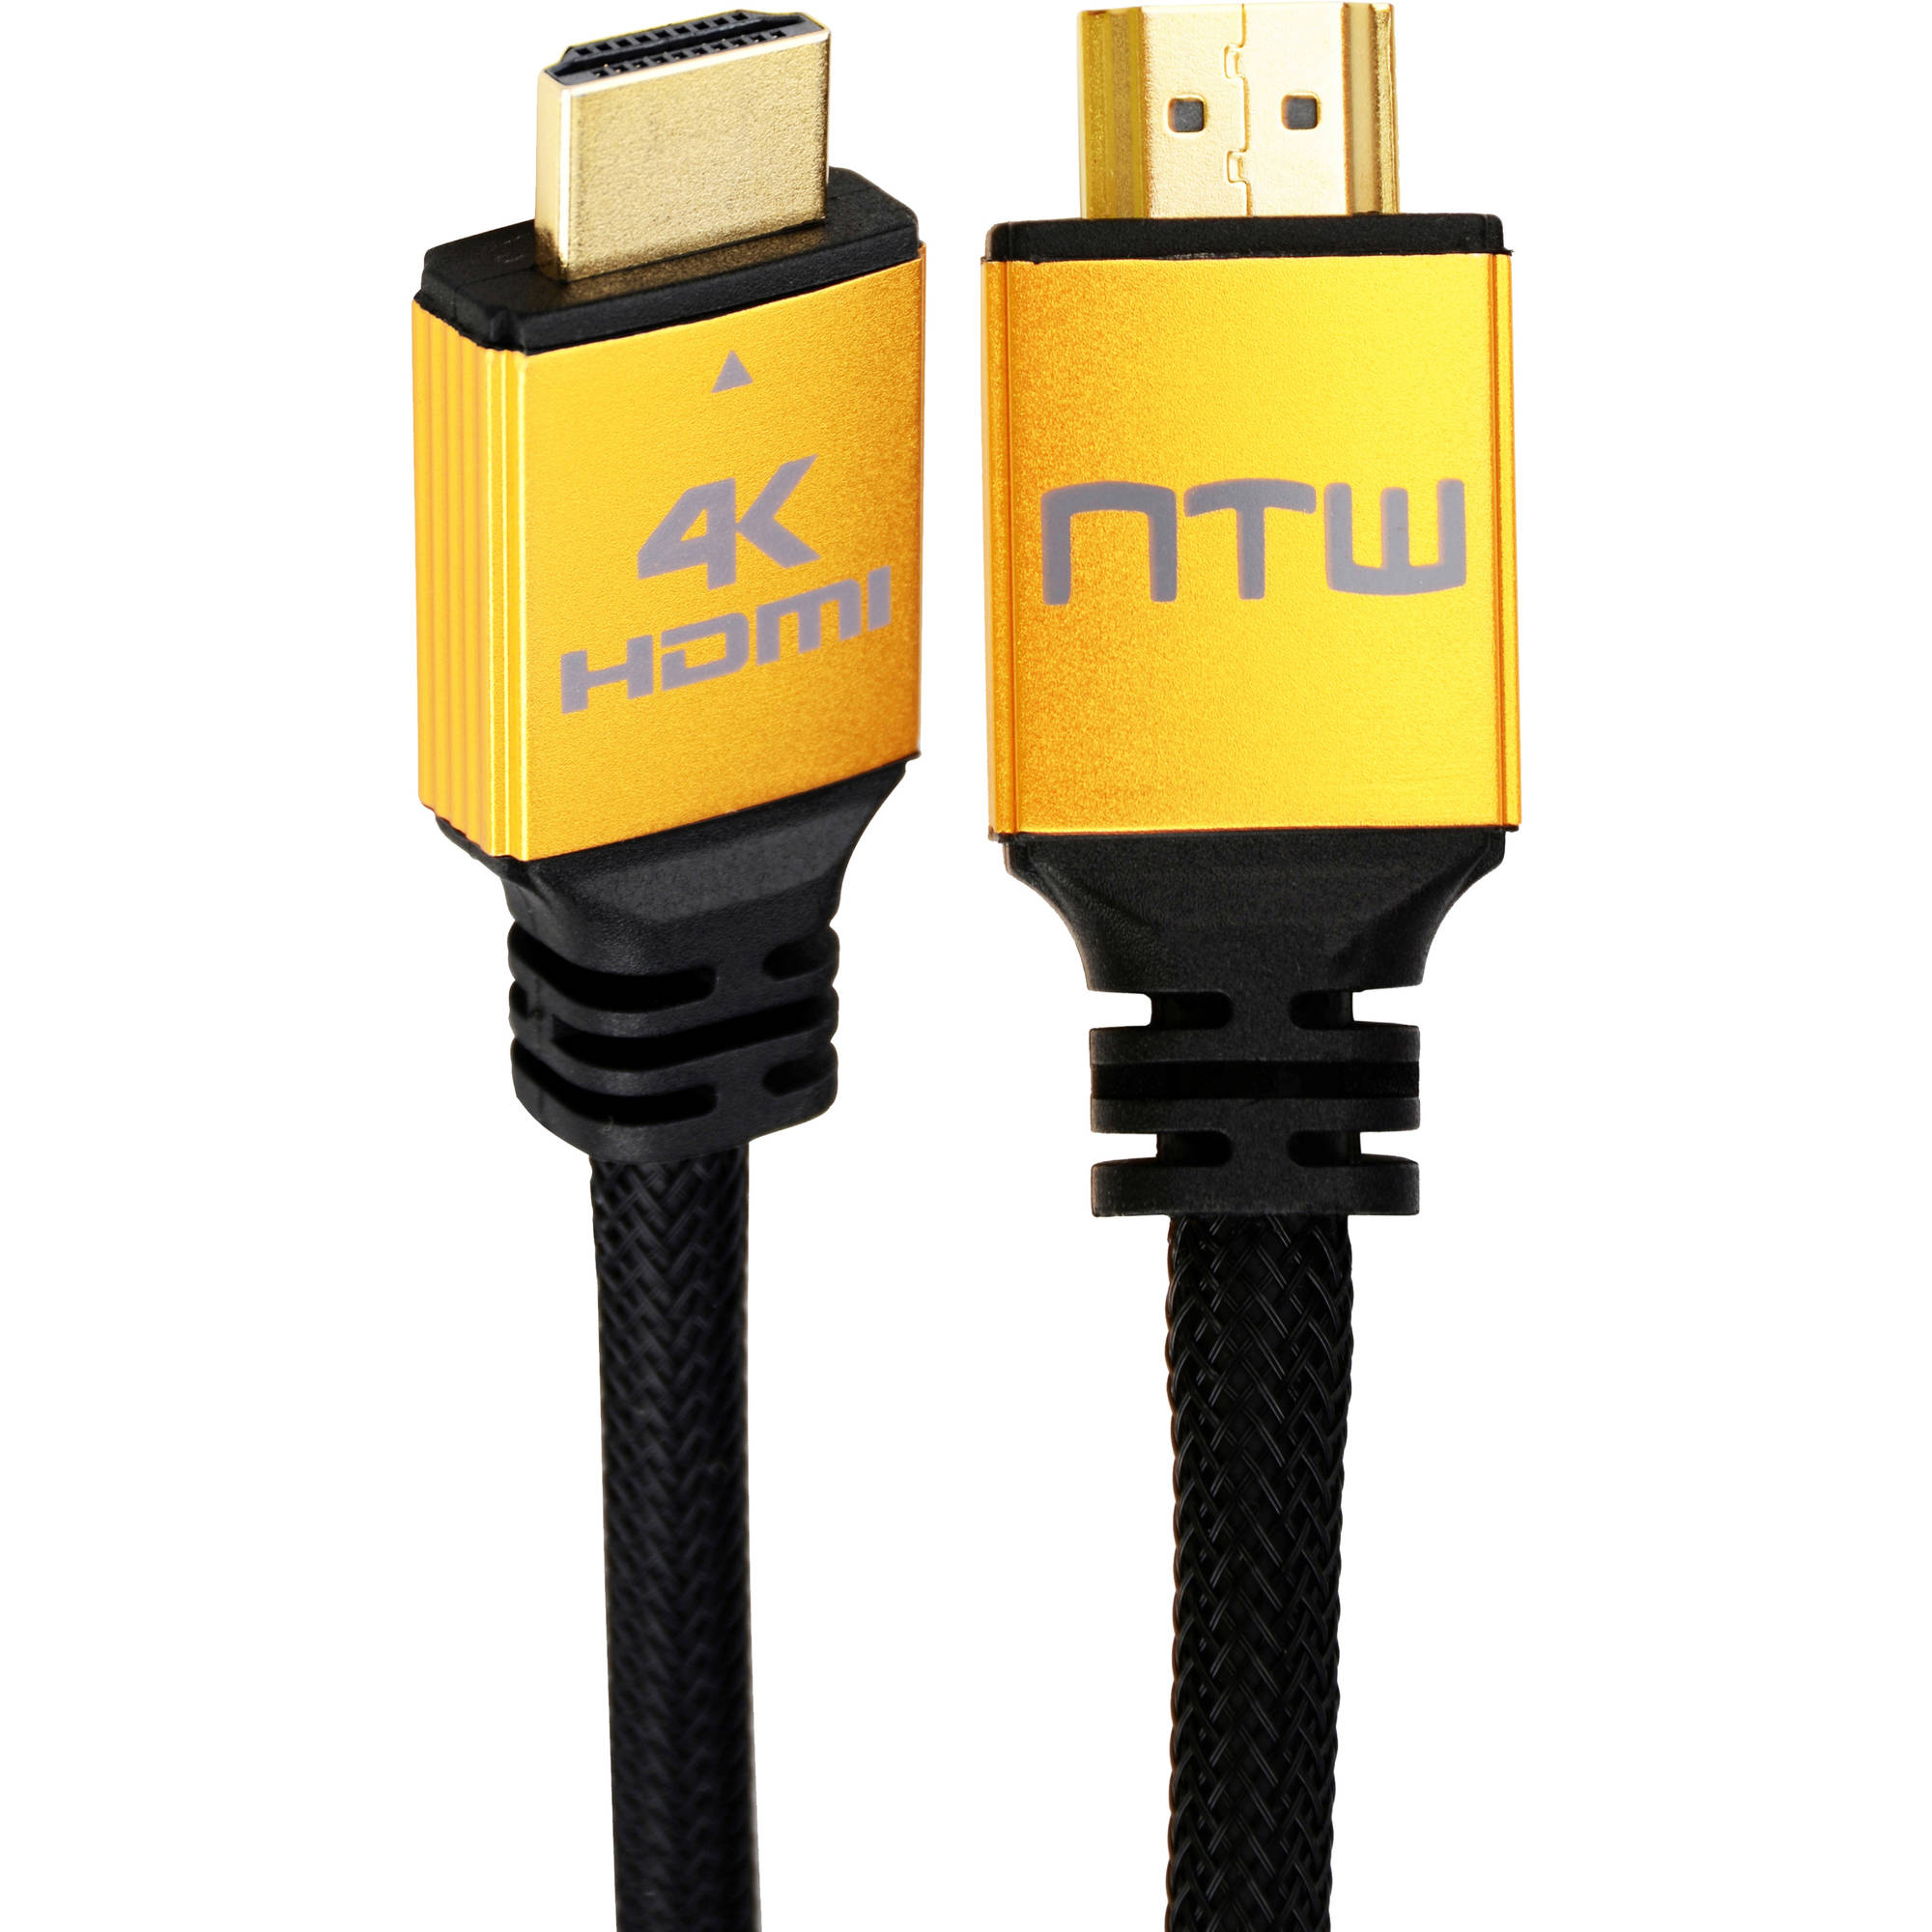 NTW 6' - 12' Ultra HD PURE PRO 4K High Speed HDMI Cable with Ethernet  4X the Clarity of 1080p Full HD for a Blazing 18Gbps Fast, Crisp, Clear A/V Connection, and 100 Percent Four Layer Shielding